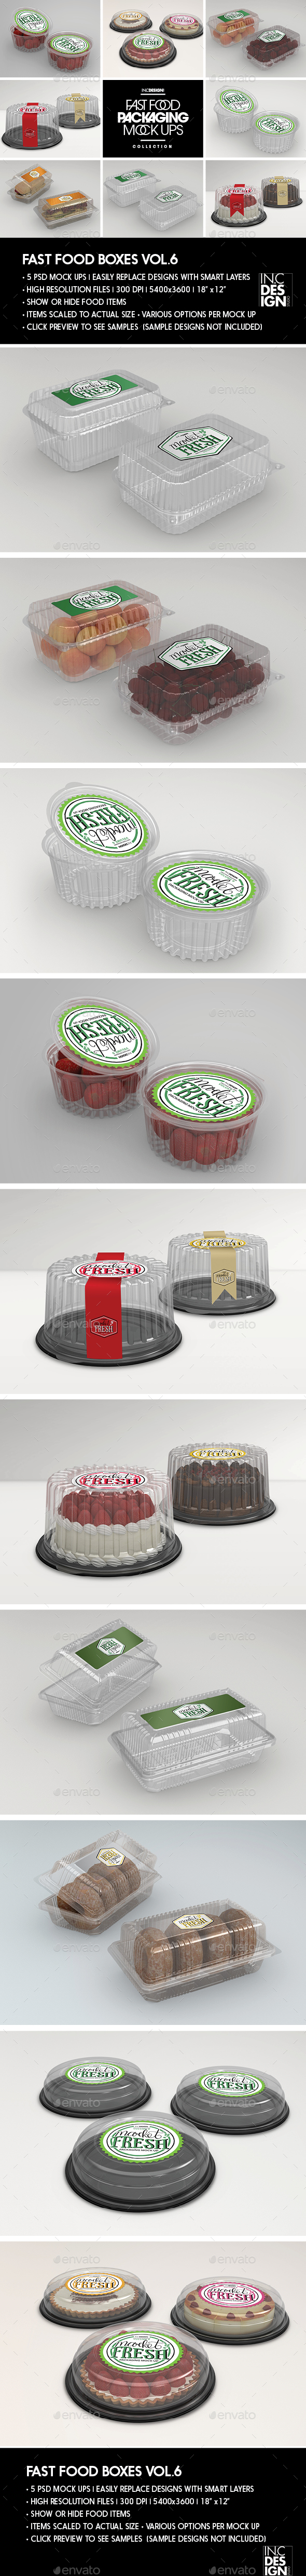 Fast Food Boxes Vol.6:Take Out Packaging Mock Ups - Food and Drink Packaging